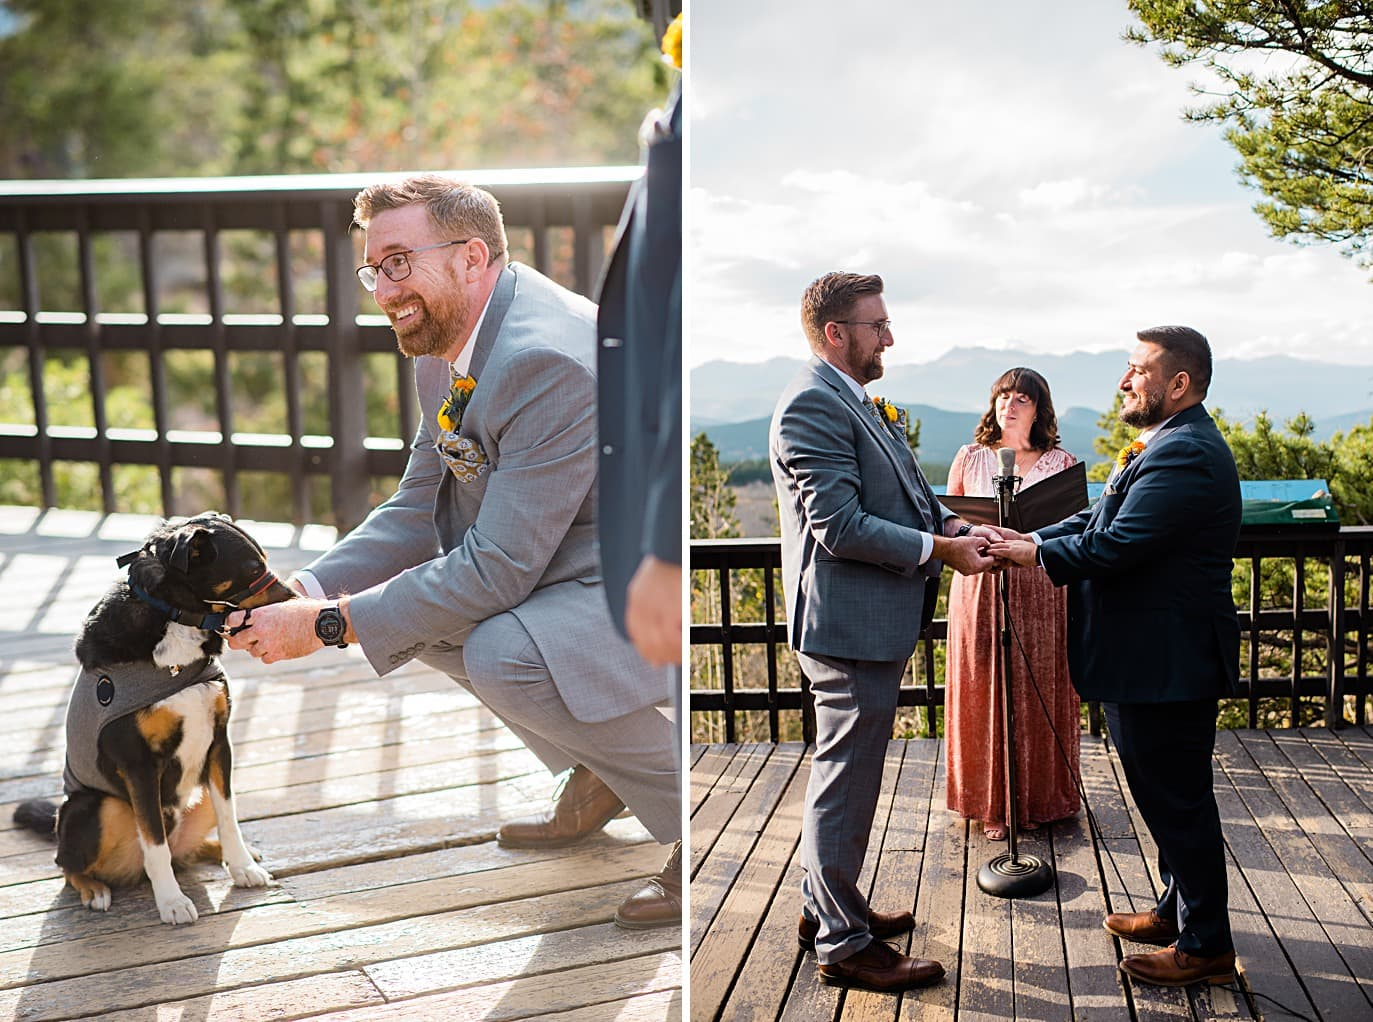 grooms get rings from ring bearer dog at Panorama point during LGBTQ wedding by Colorado LGBT photographer Jennie Crate